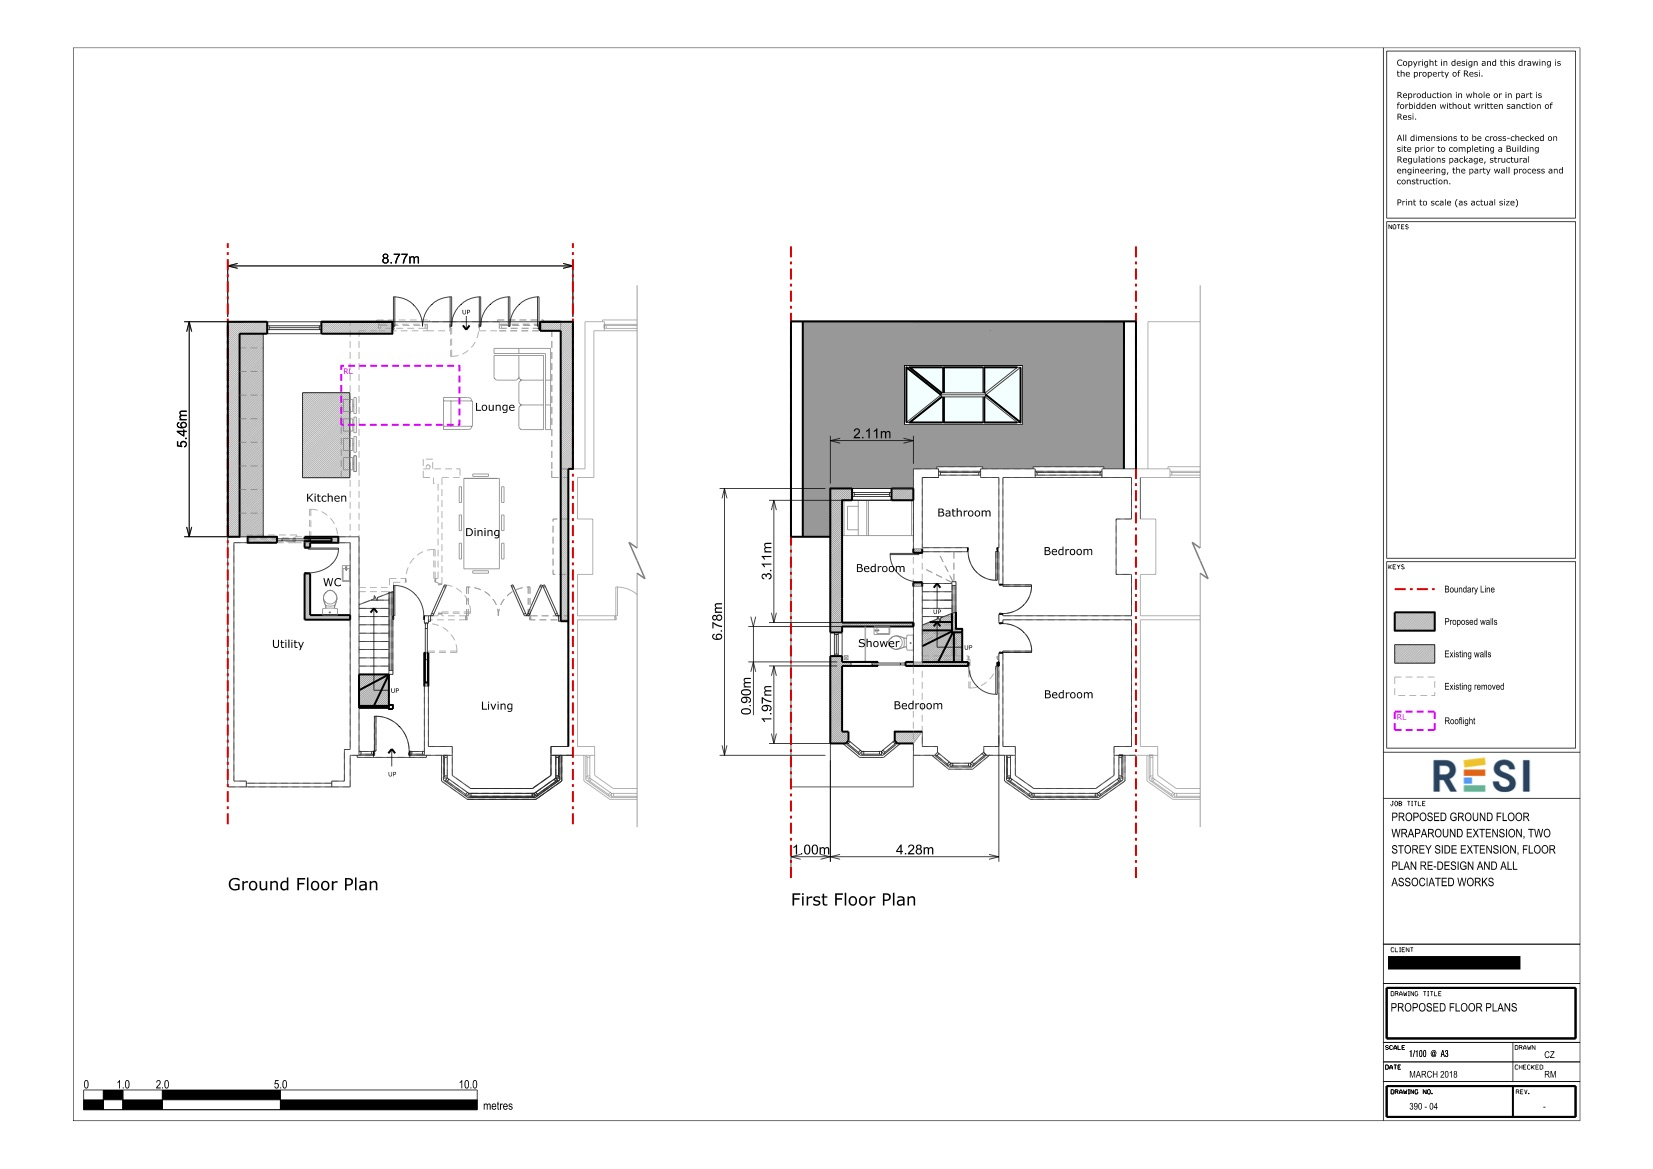 Architectural drawings 33   ground and first floor plans